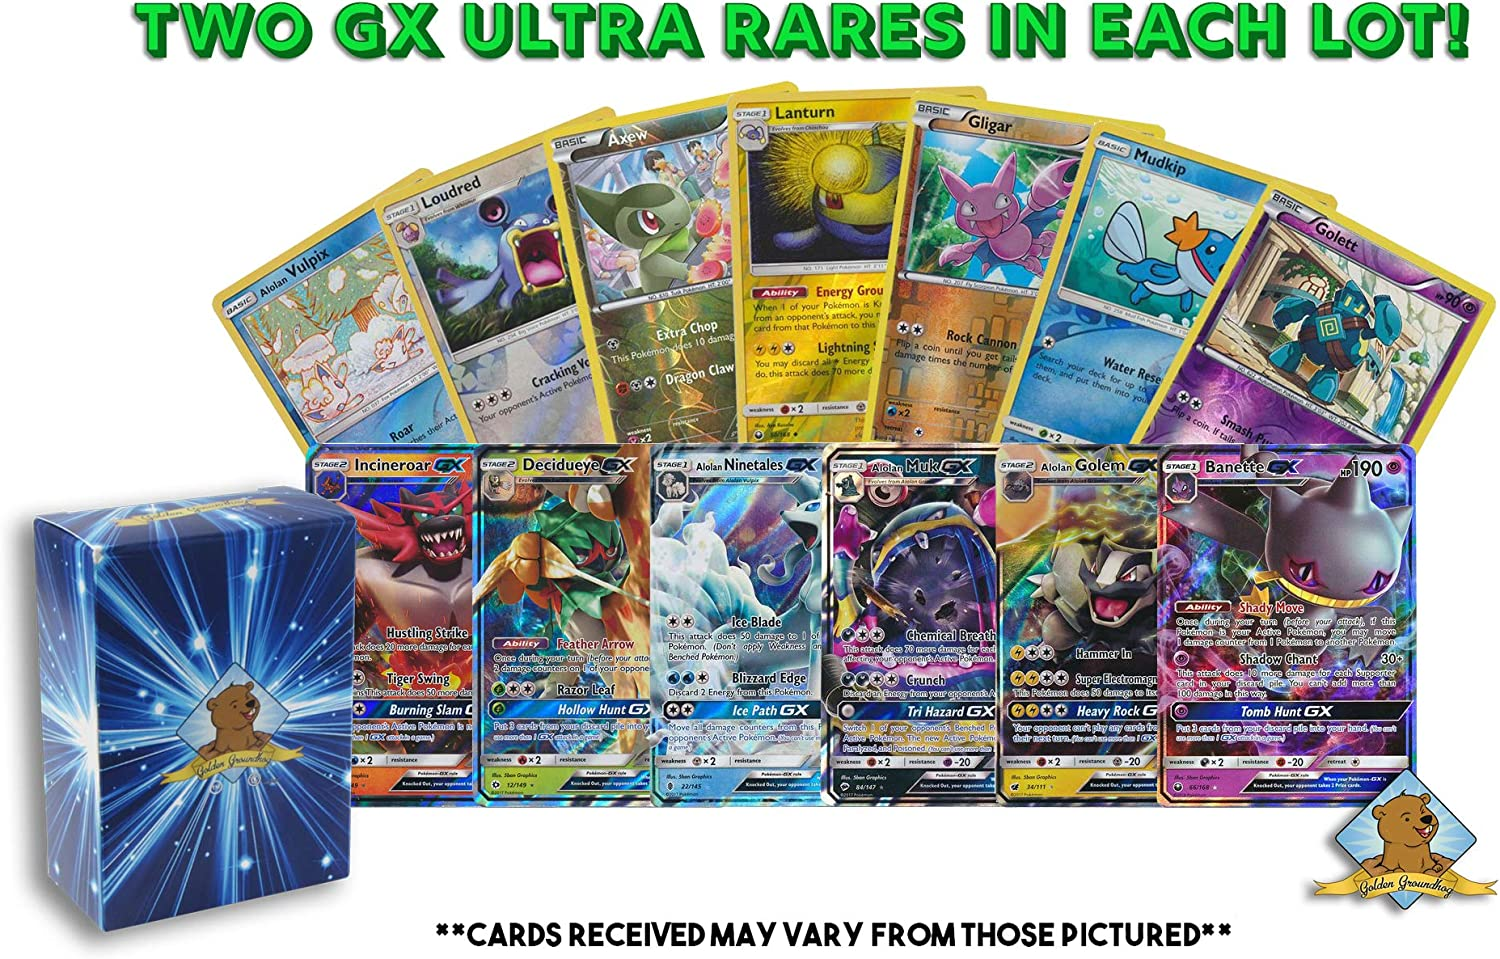 20 Assorted Pokemon Cards - 2 GX Ultra Rares and 18 Reverse Holographic Rares - Authentic with No Duplication - Includes Golden Groundhog Deck Storage Box!